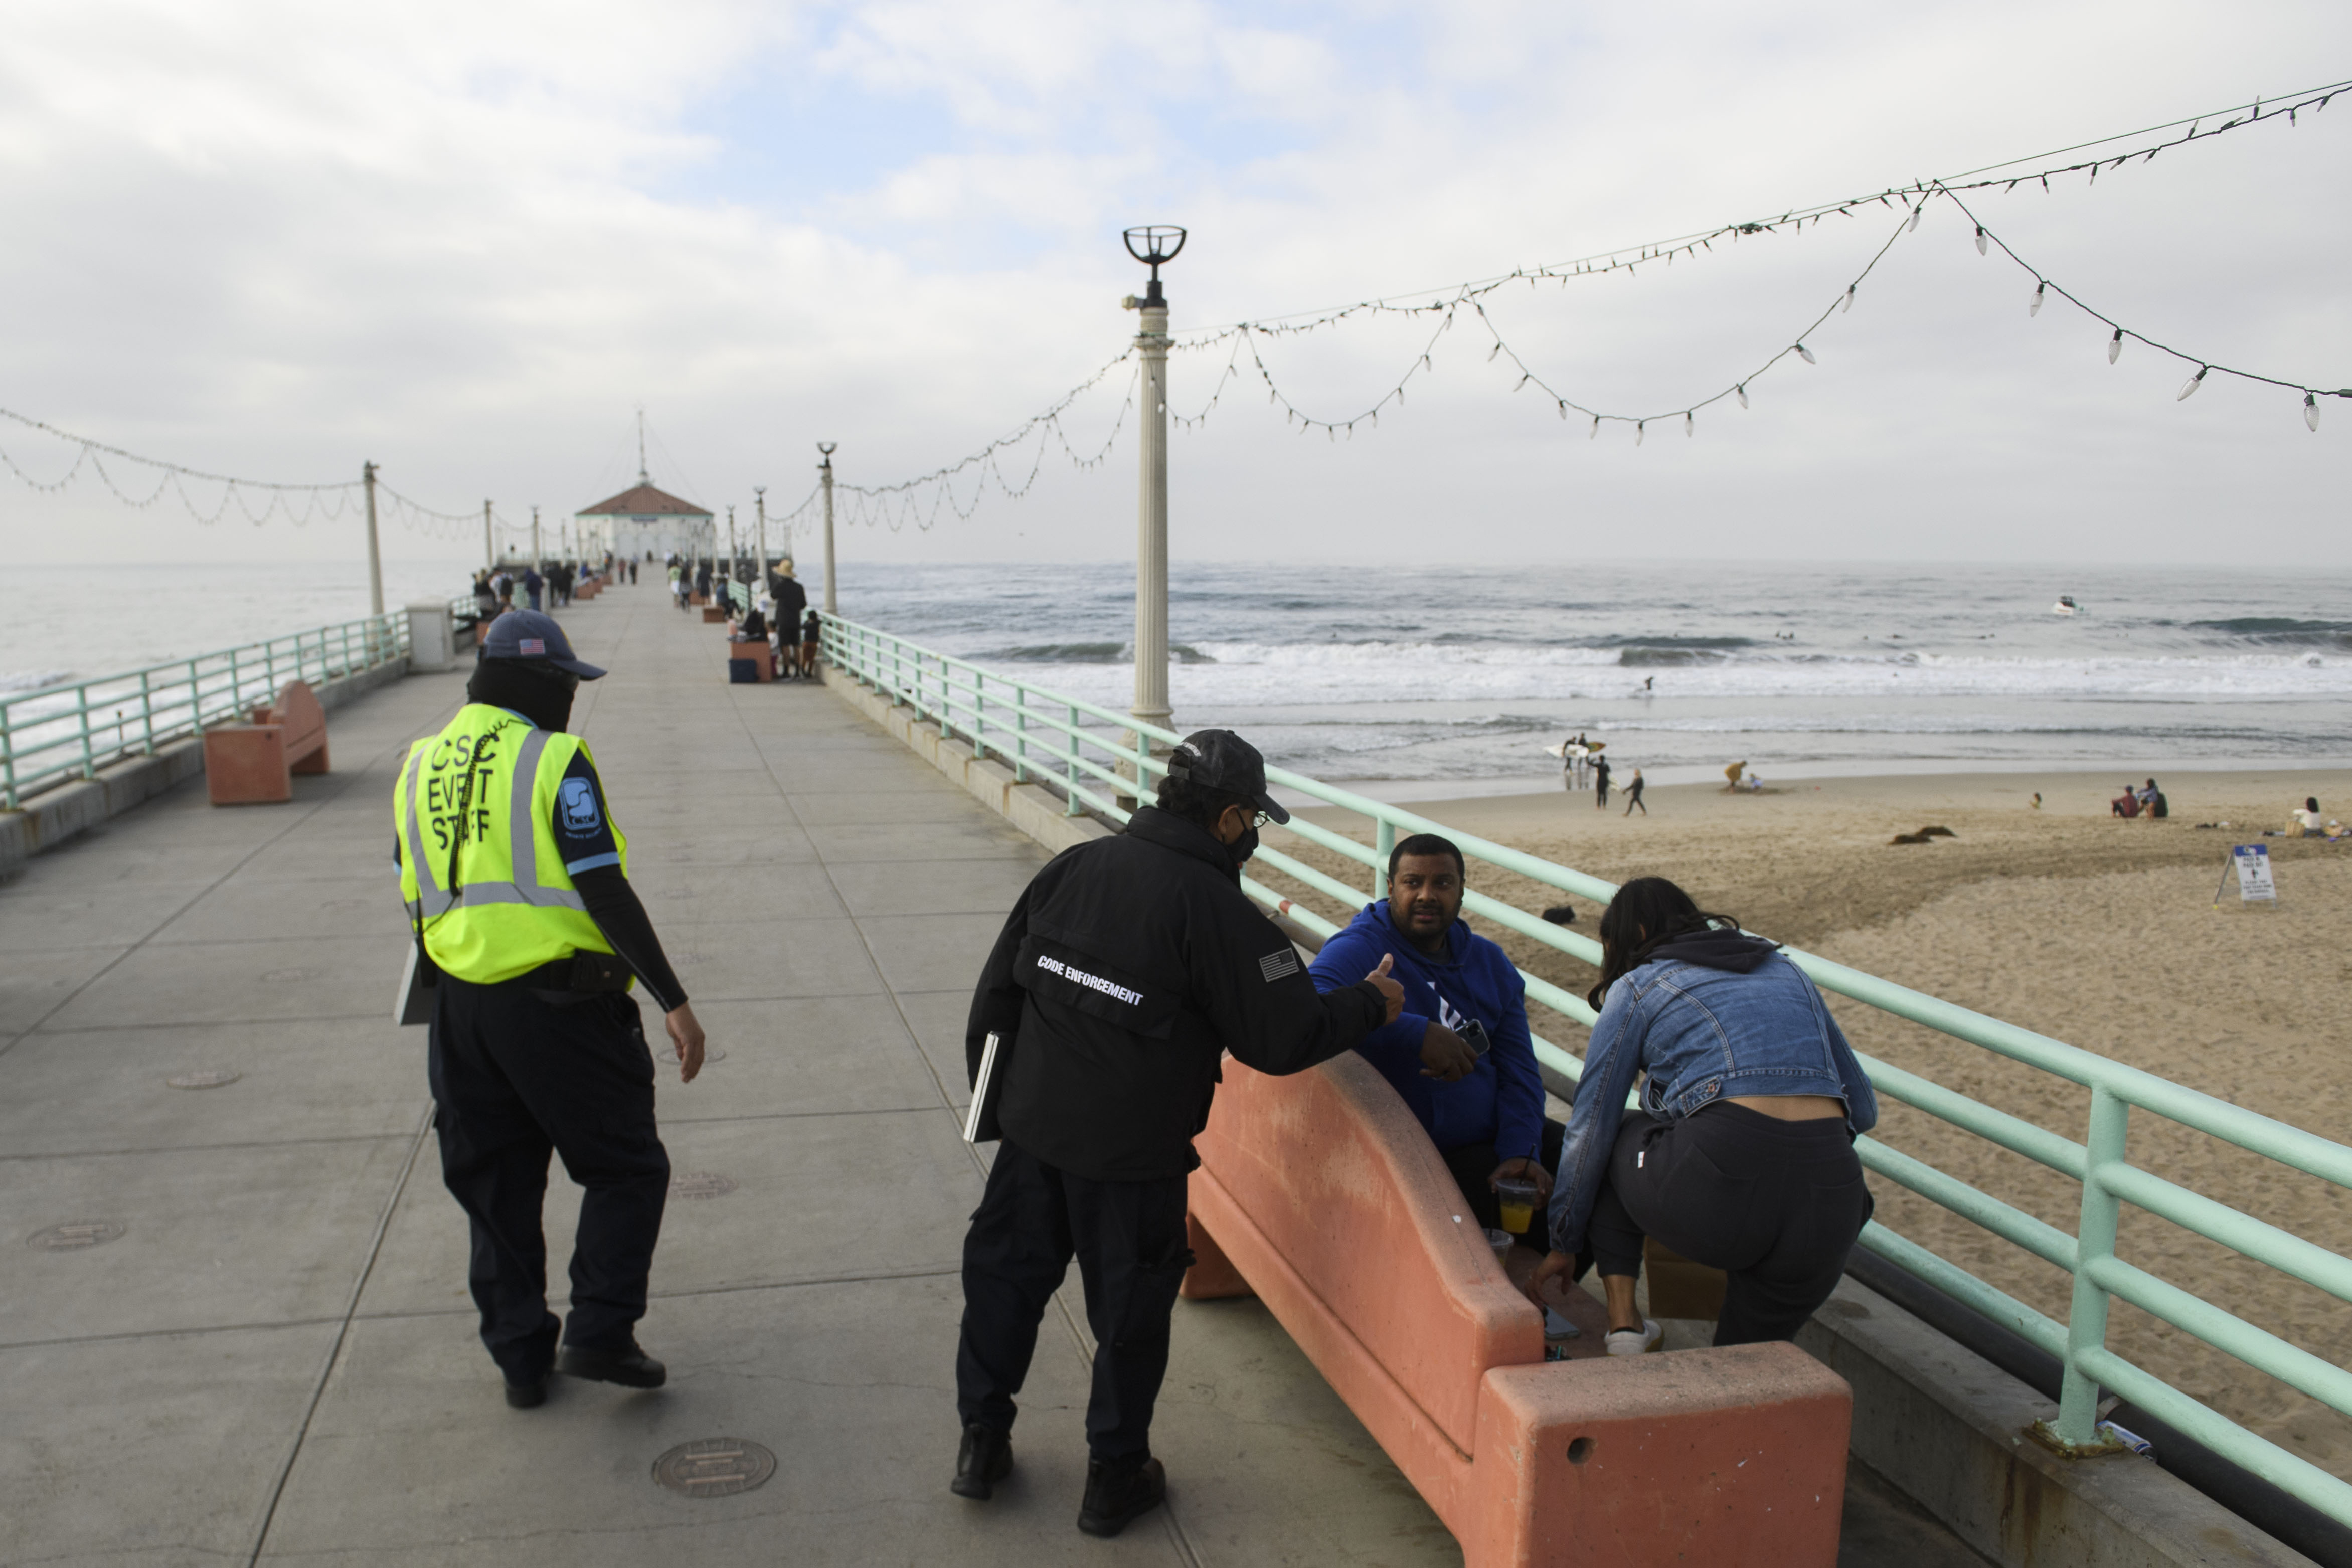 City workers enforce COVID-19 mask restrictions on the pier in Manhattan Beach, Calif., on Dec. 12, 2020.